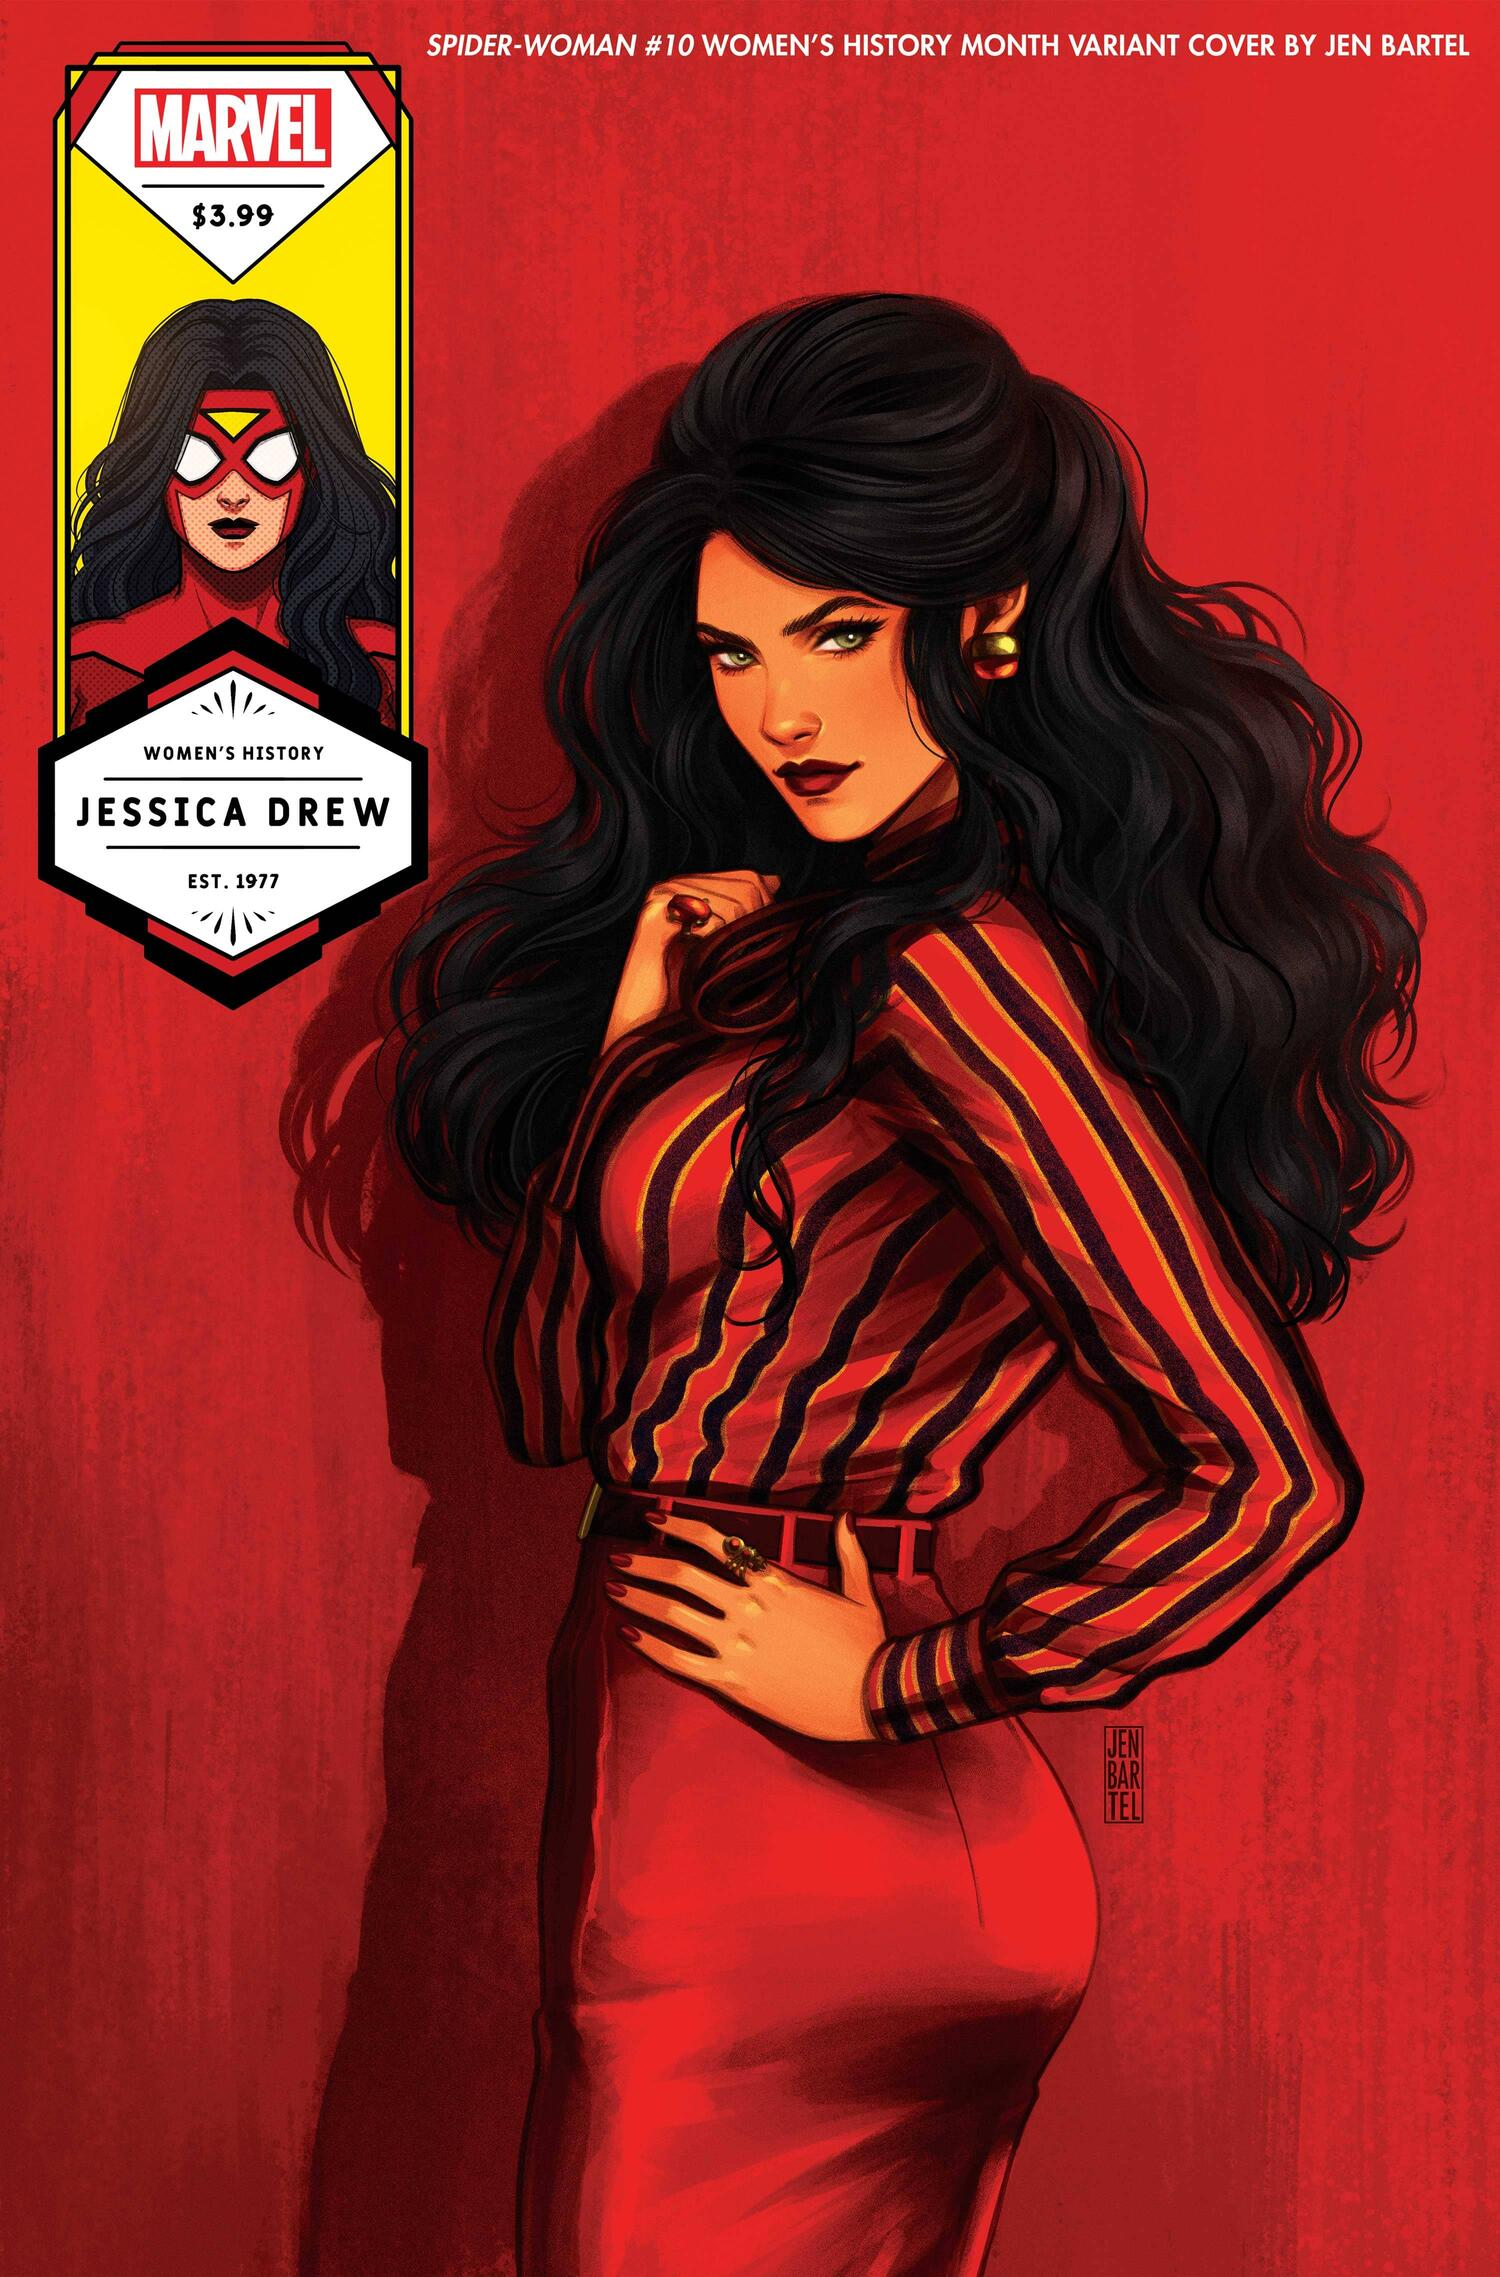 SPIDER-WOMAN #10 WOMEN'S HISTORY MONTH VARIANT COVER by JEN BARTEL